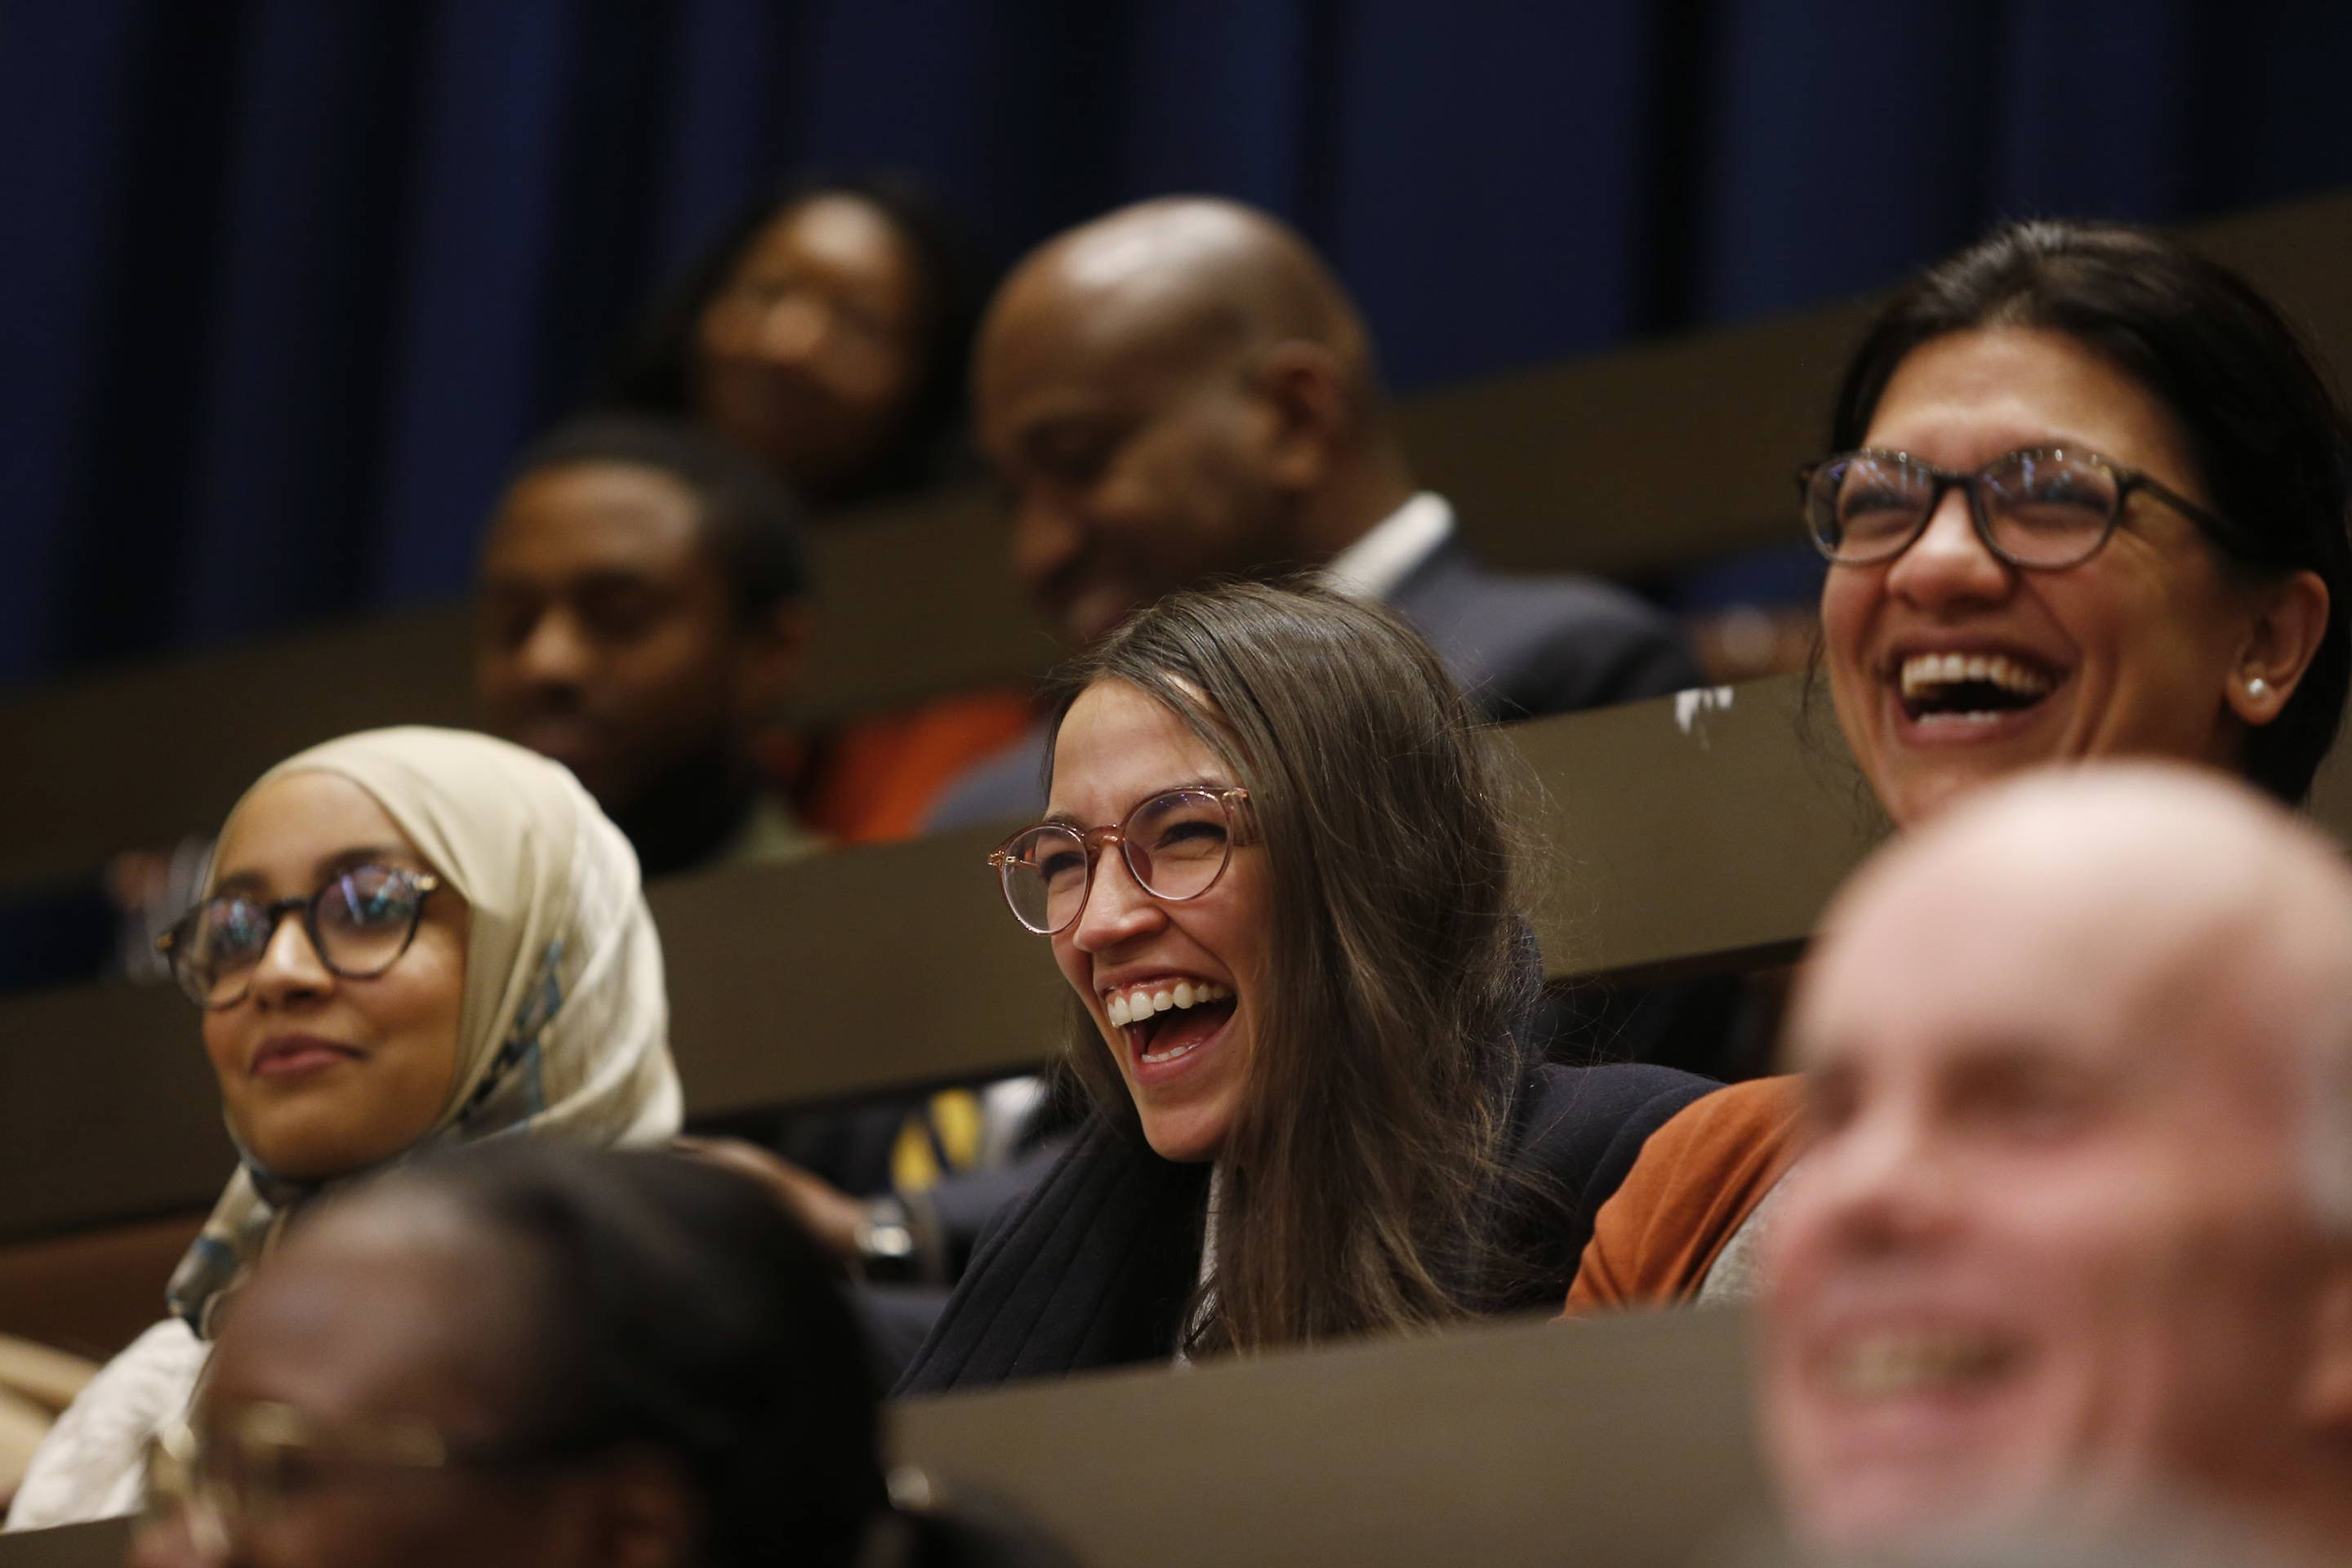 Alexandria Ocasio-Cortez and Rashida Tlaib laugh at a Boston City Council meeting on Dec. 5, 2018.